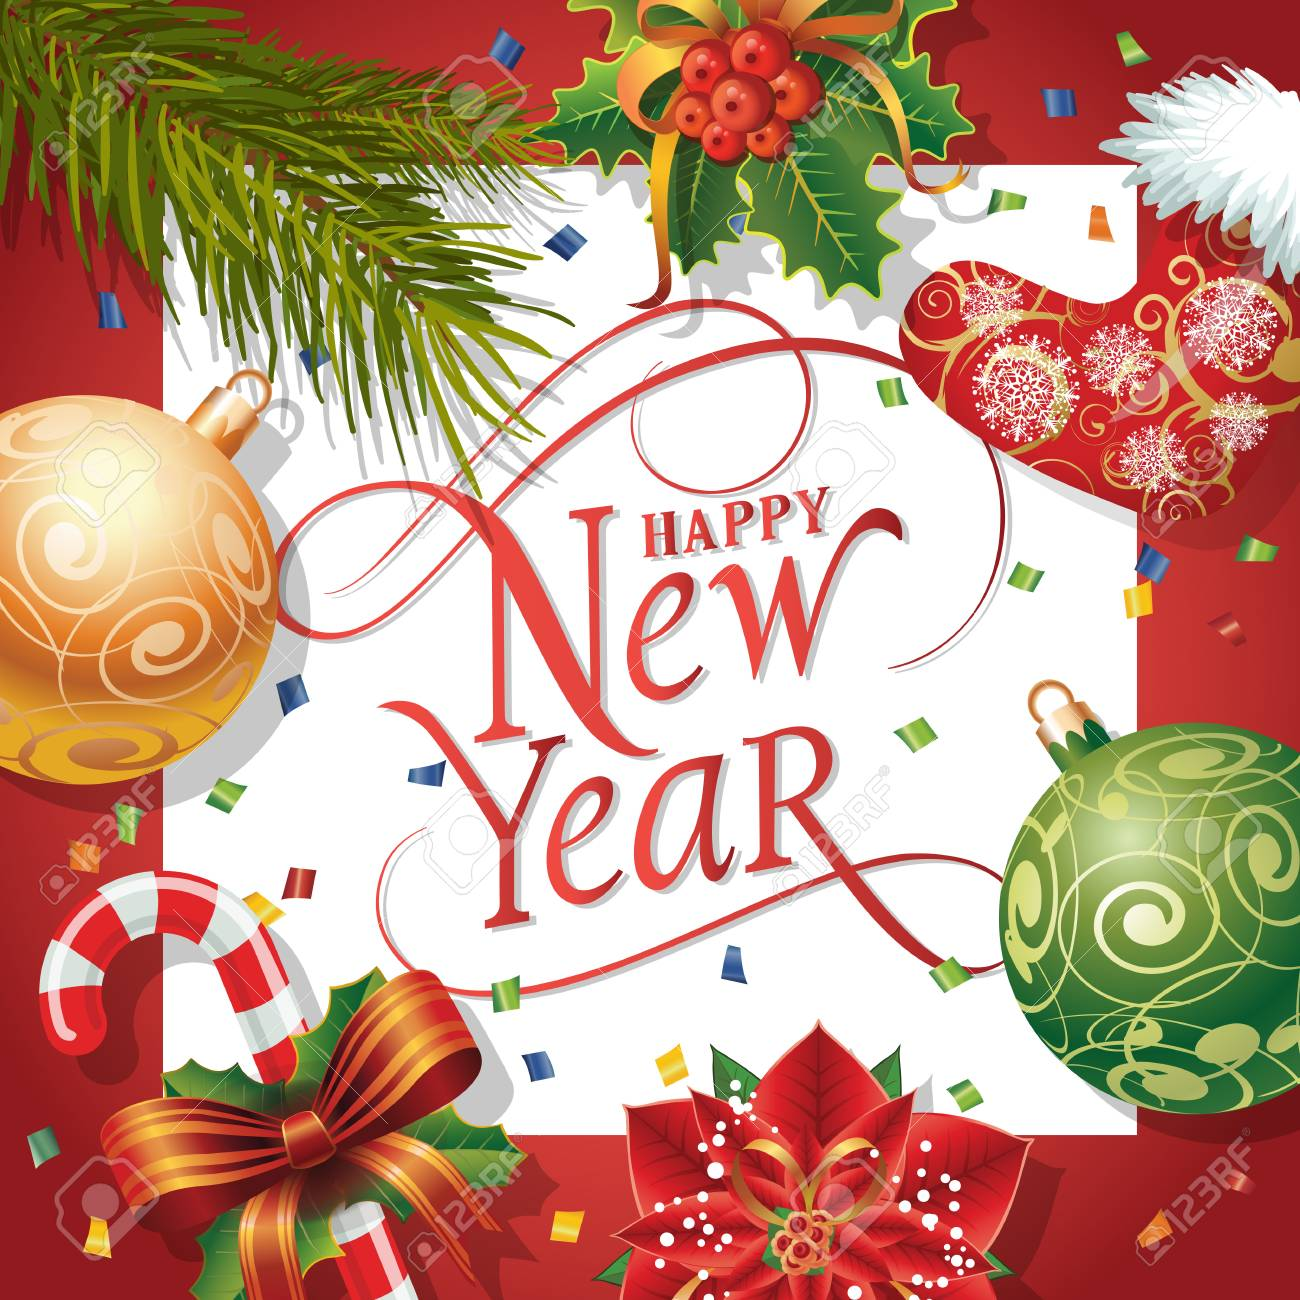 Happy new year lettering in square new year day greeting card happy new year lettering in square new year day greeting card with fir tree twig m4hsunfo